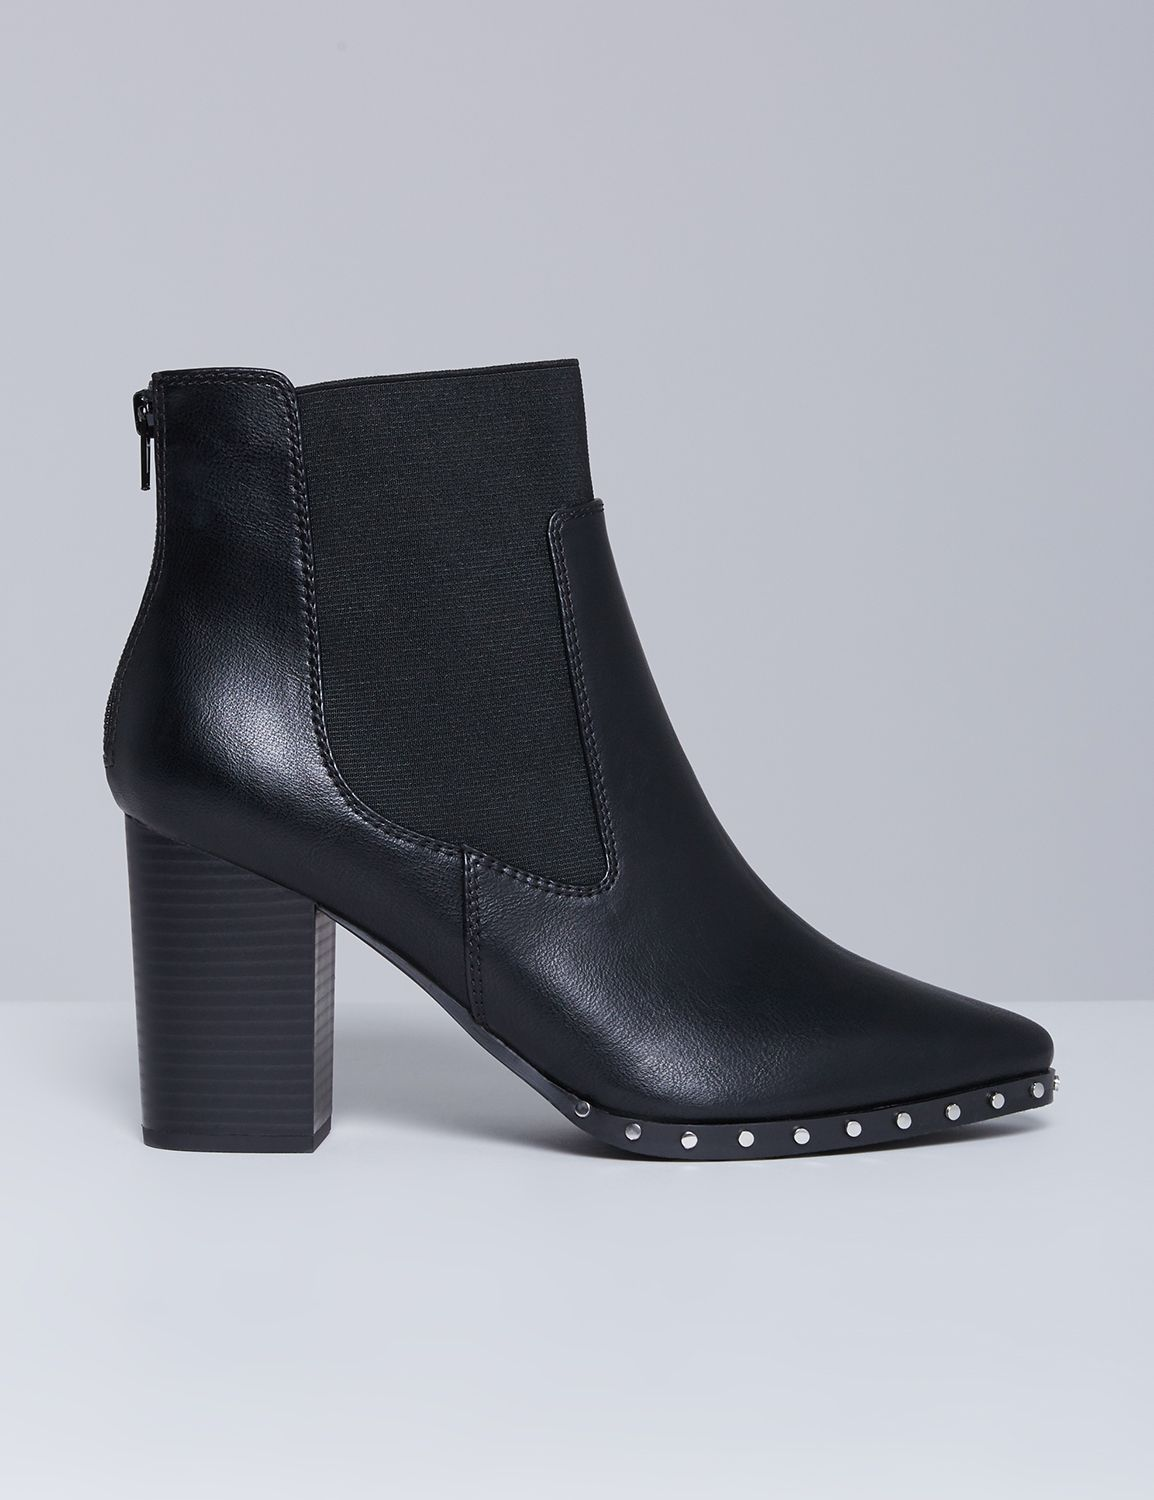 Lane Bryant Women S Studded Ankle Boot With Block Heel 8w